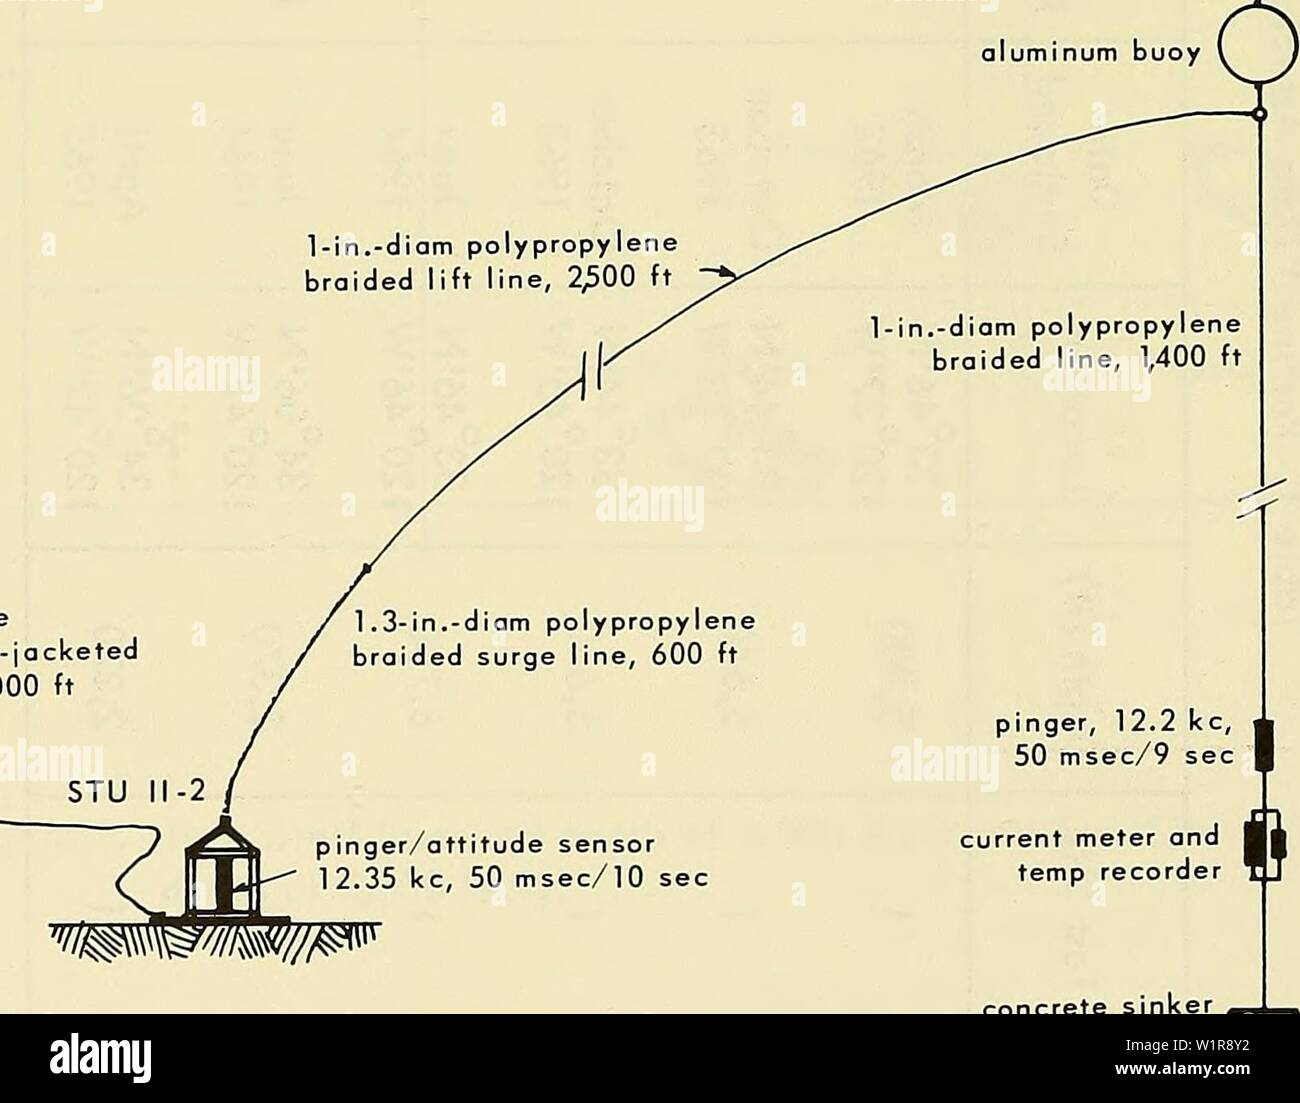 hight resolution of archive image from page 9 of deep ocean biodeterioration of materials 1965